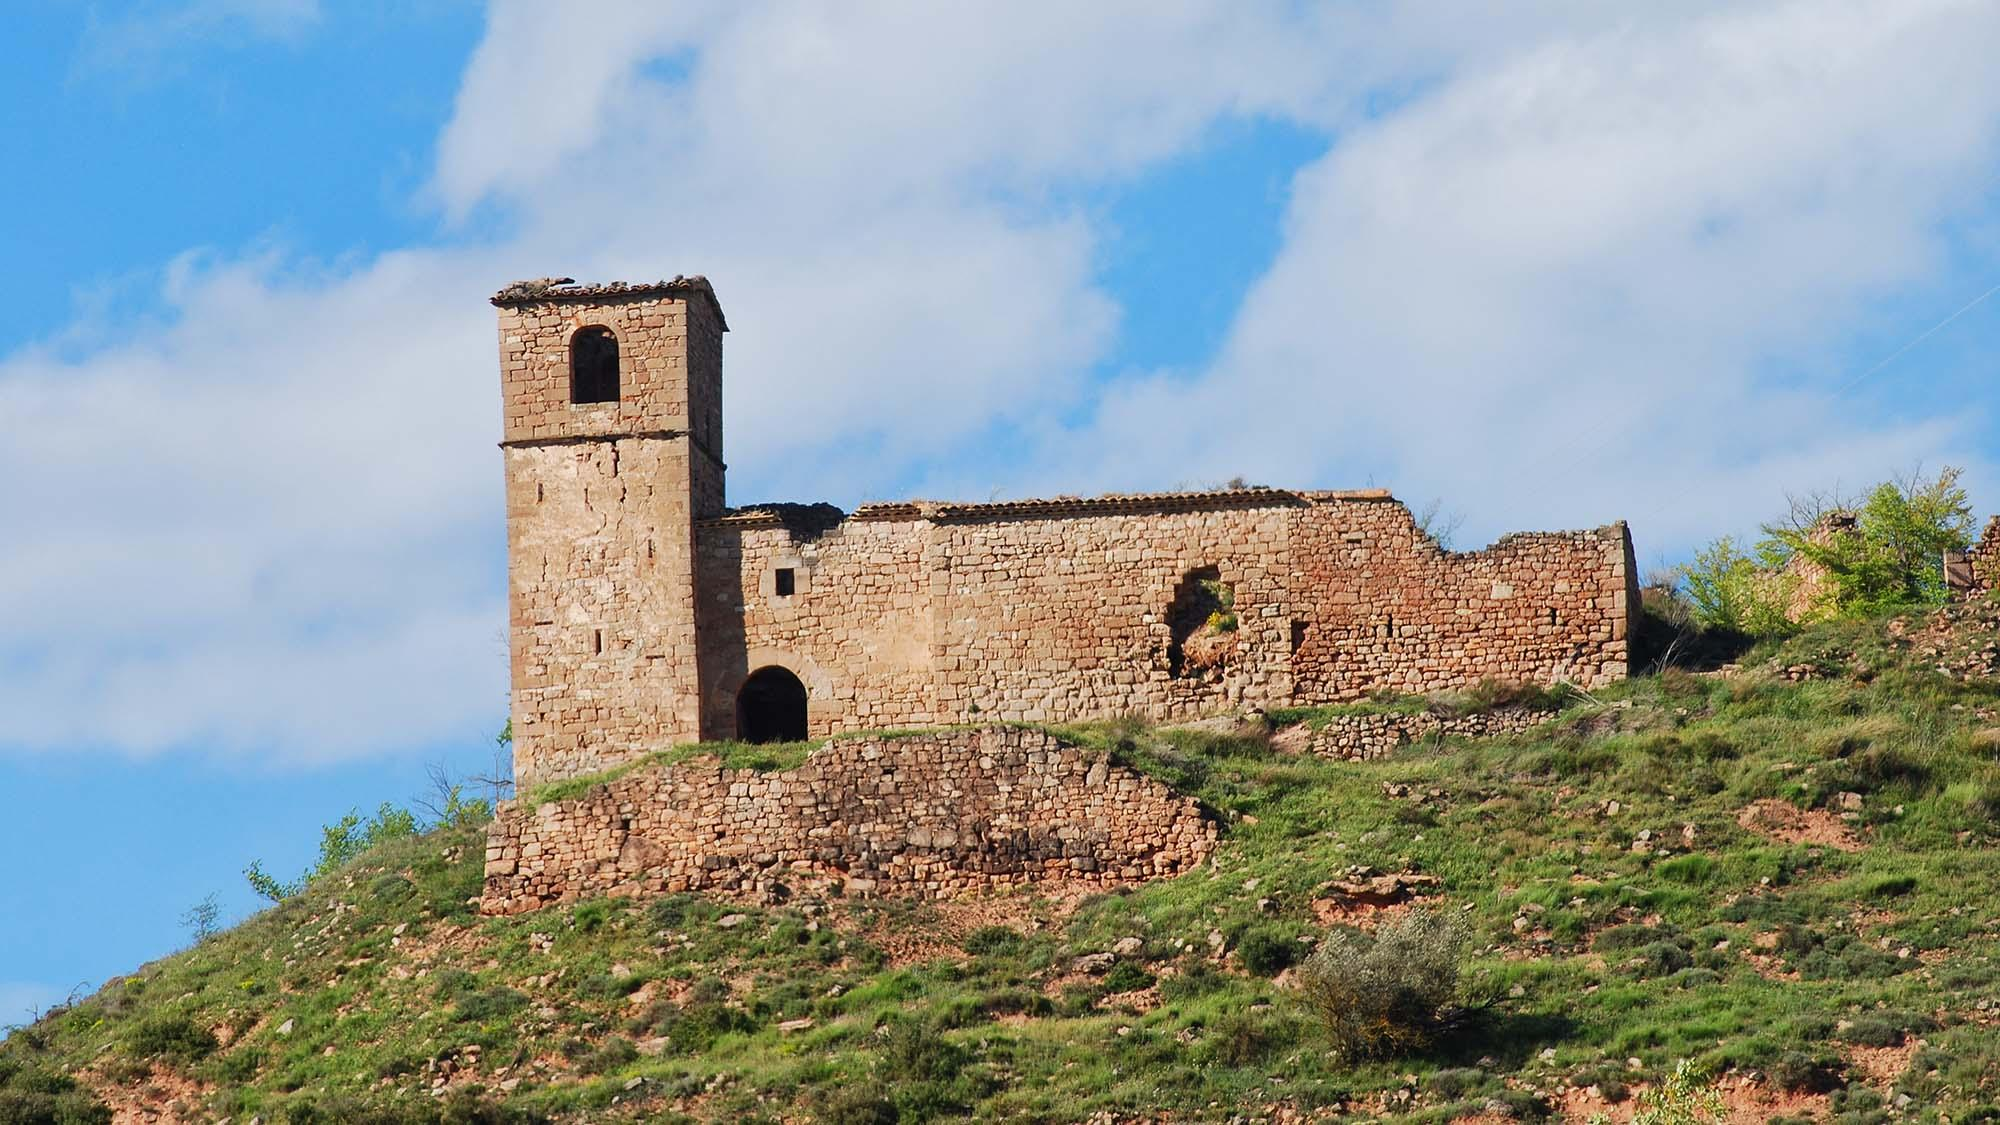 Church Sant Salvador de Miralles